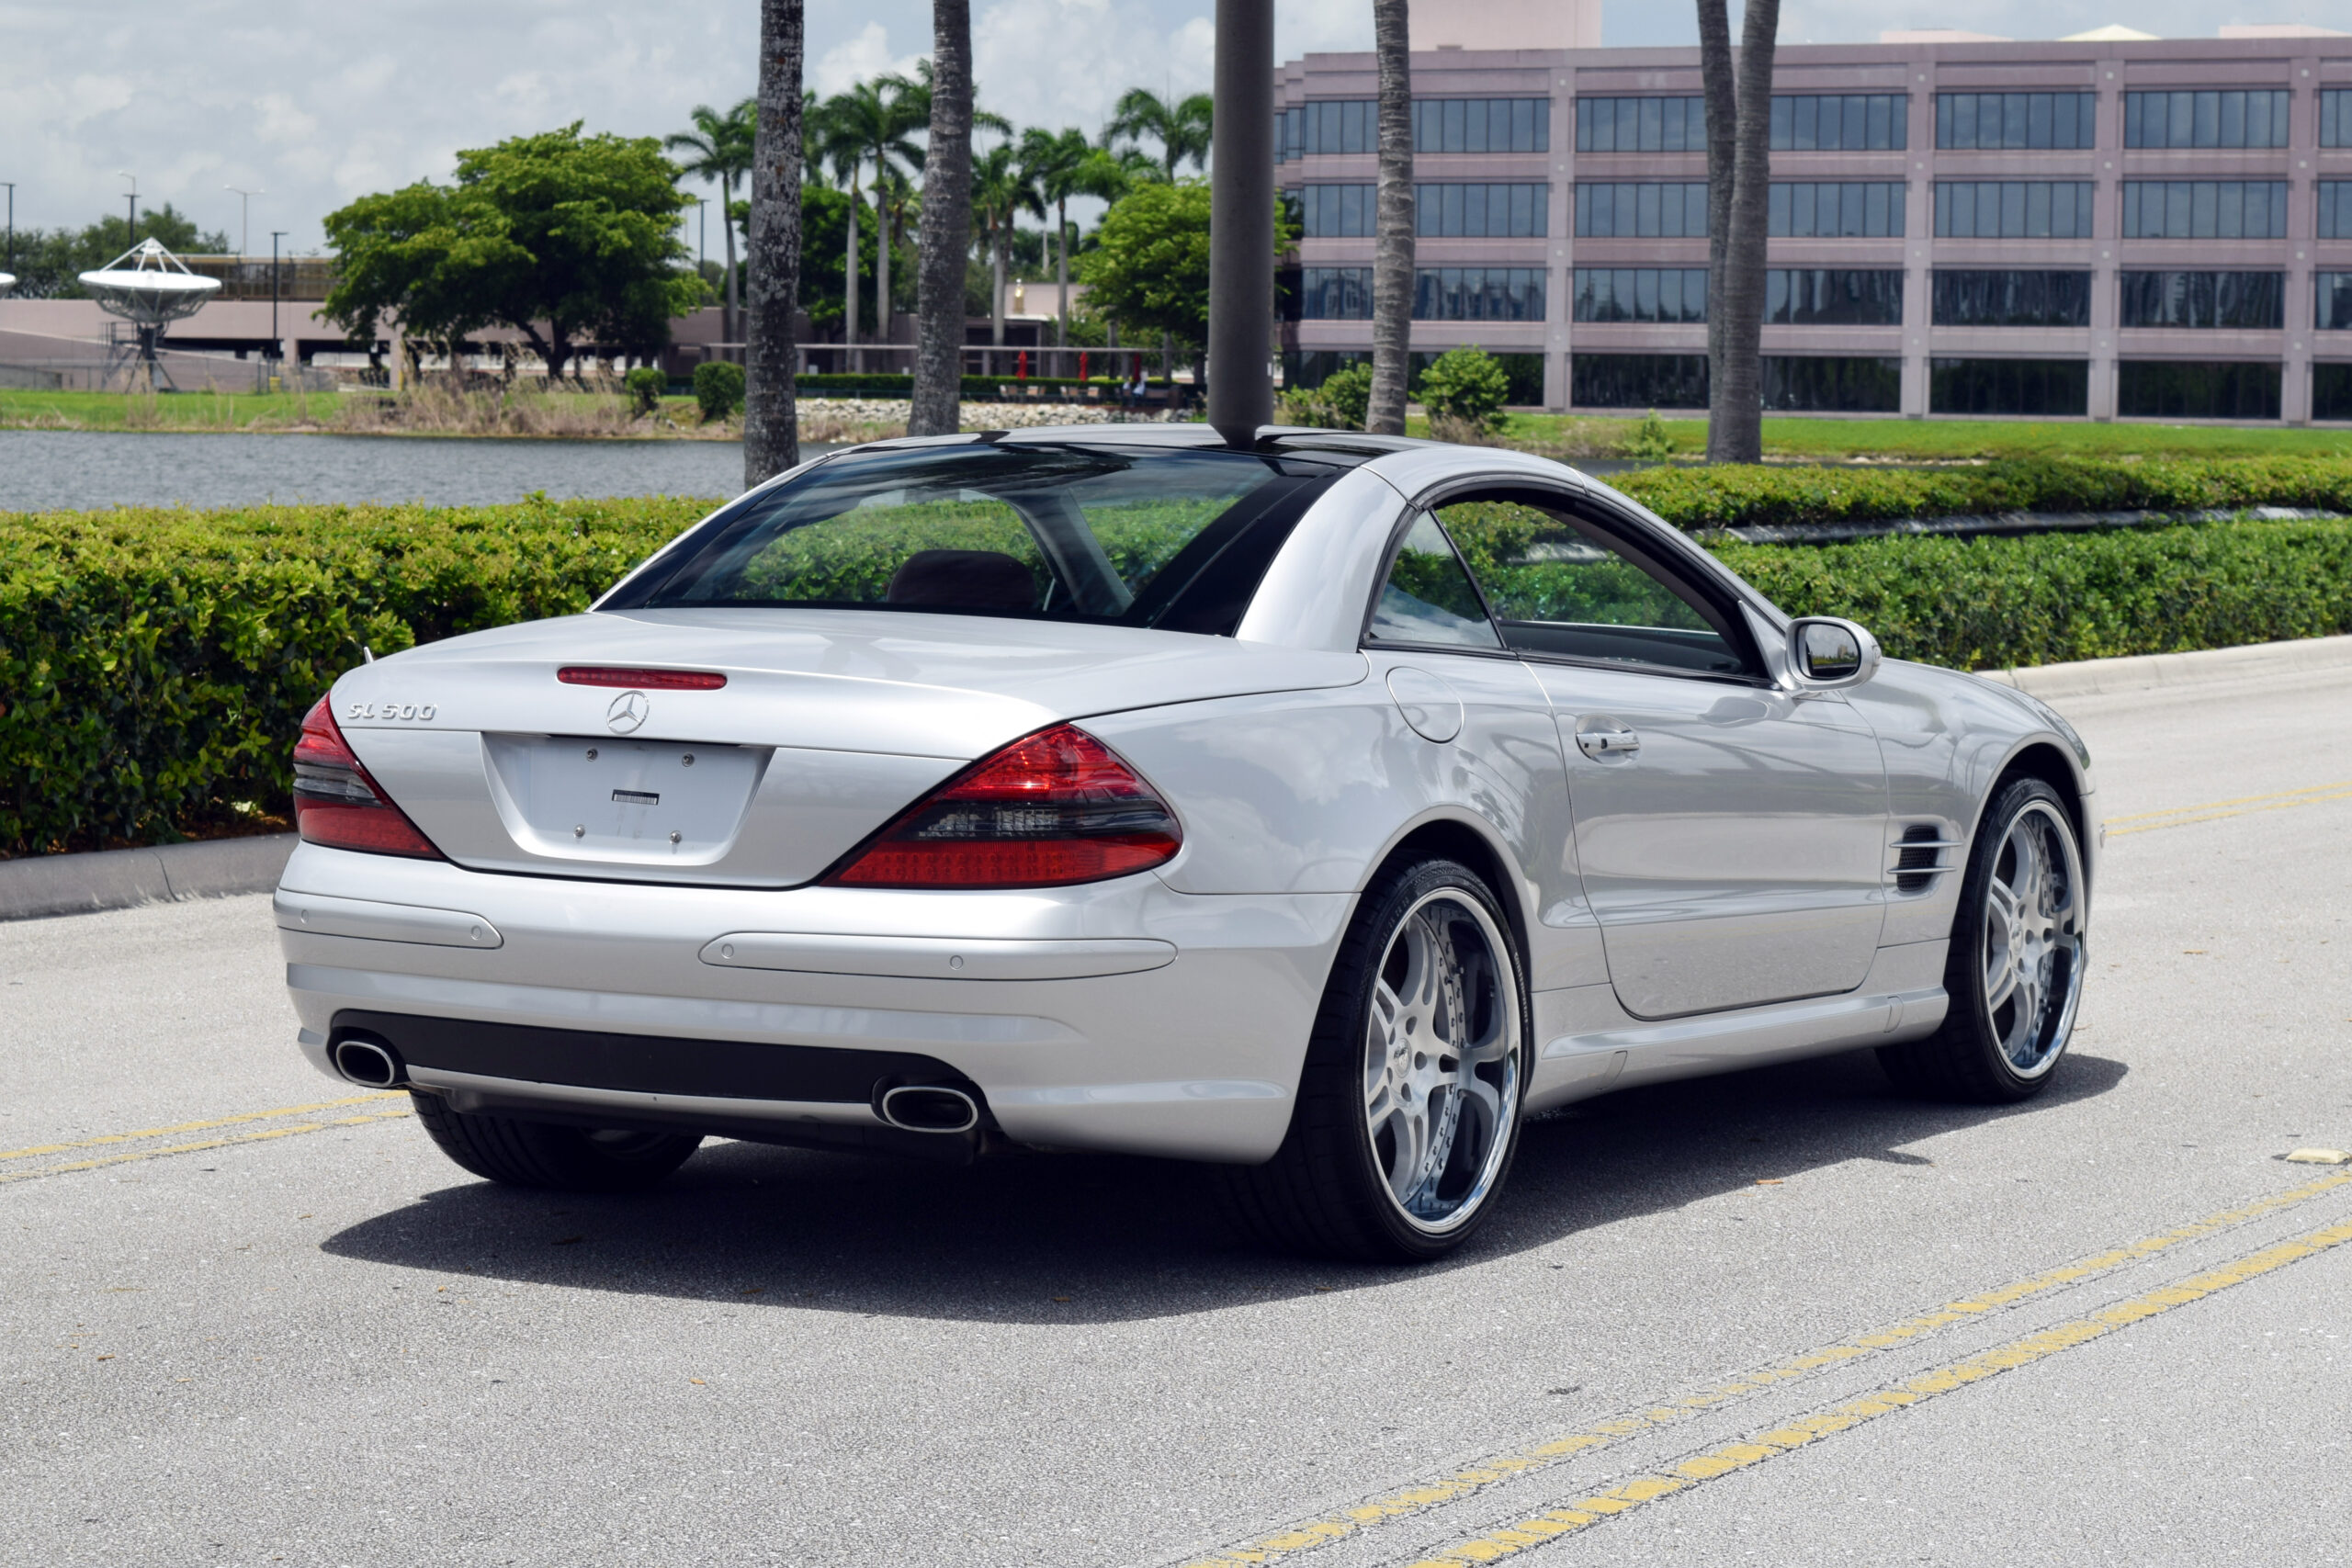 2003 Mercedes 500SL Low Miles, ONLY 34K Miles, Glass Convertible Hardtop, Loaded with options, Rare Color Combo, Custom Wheels